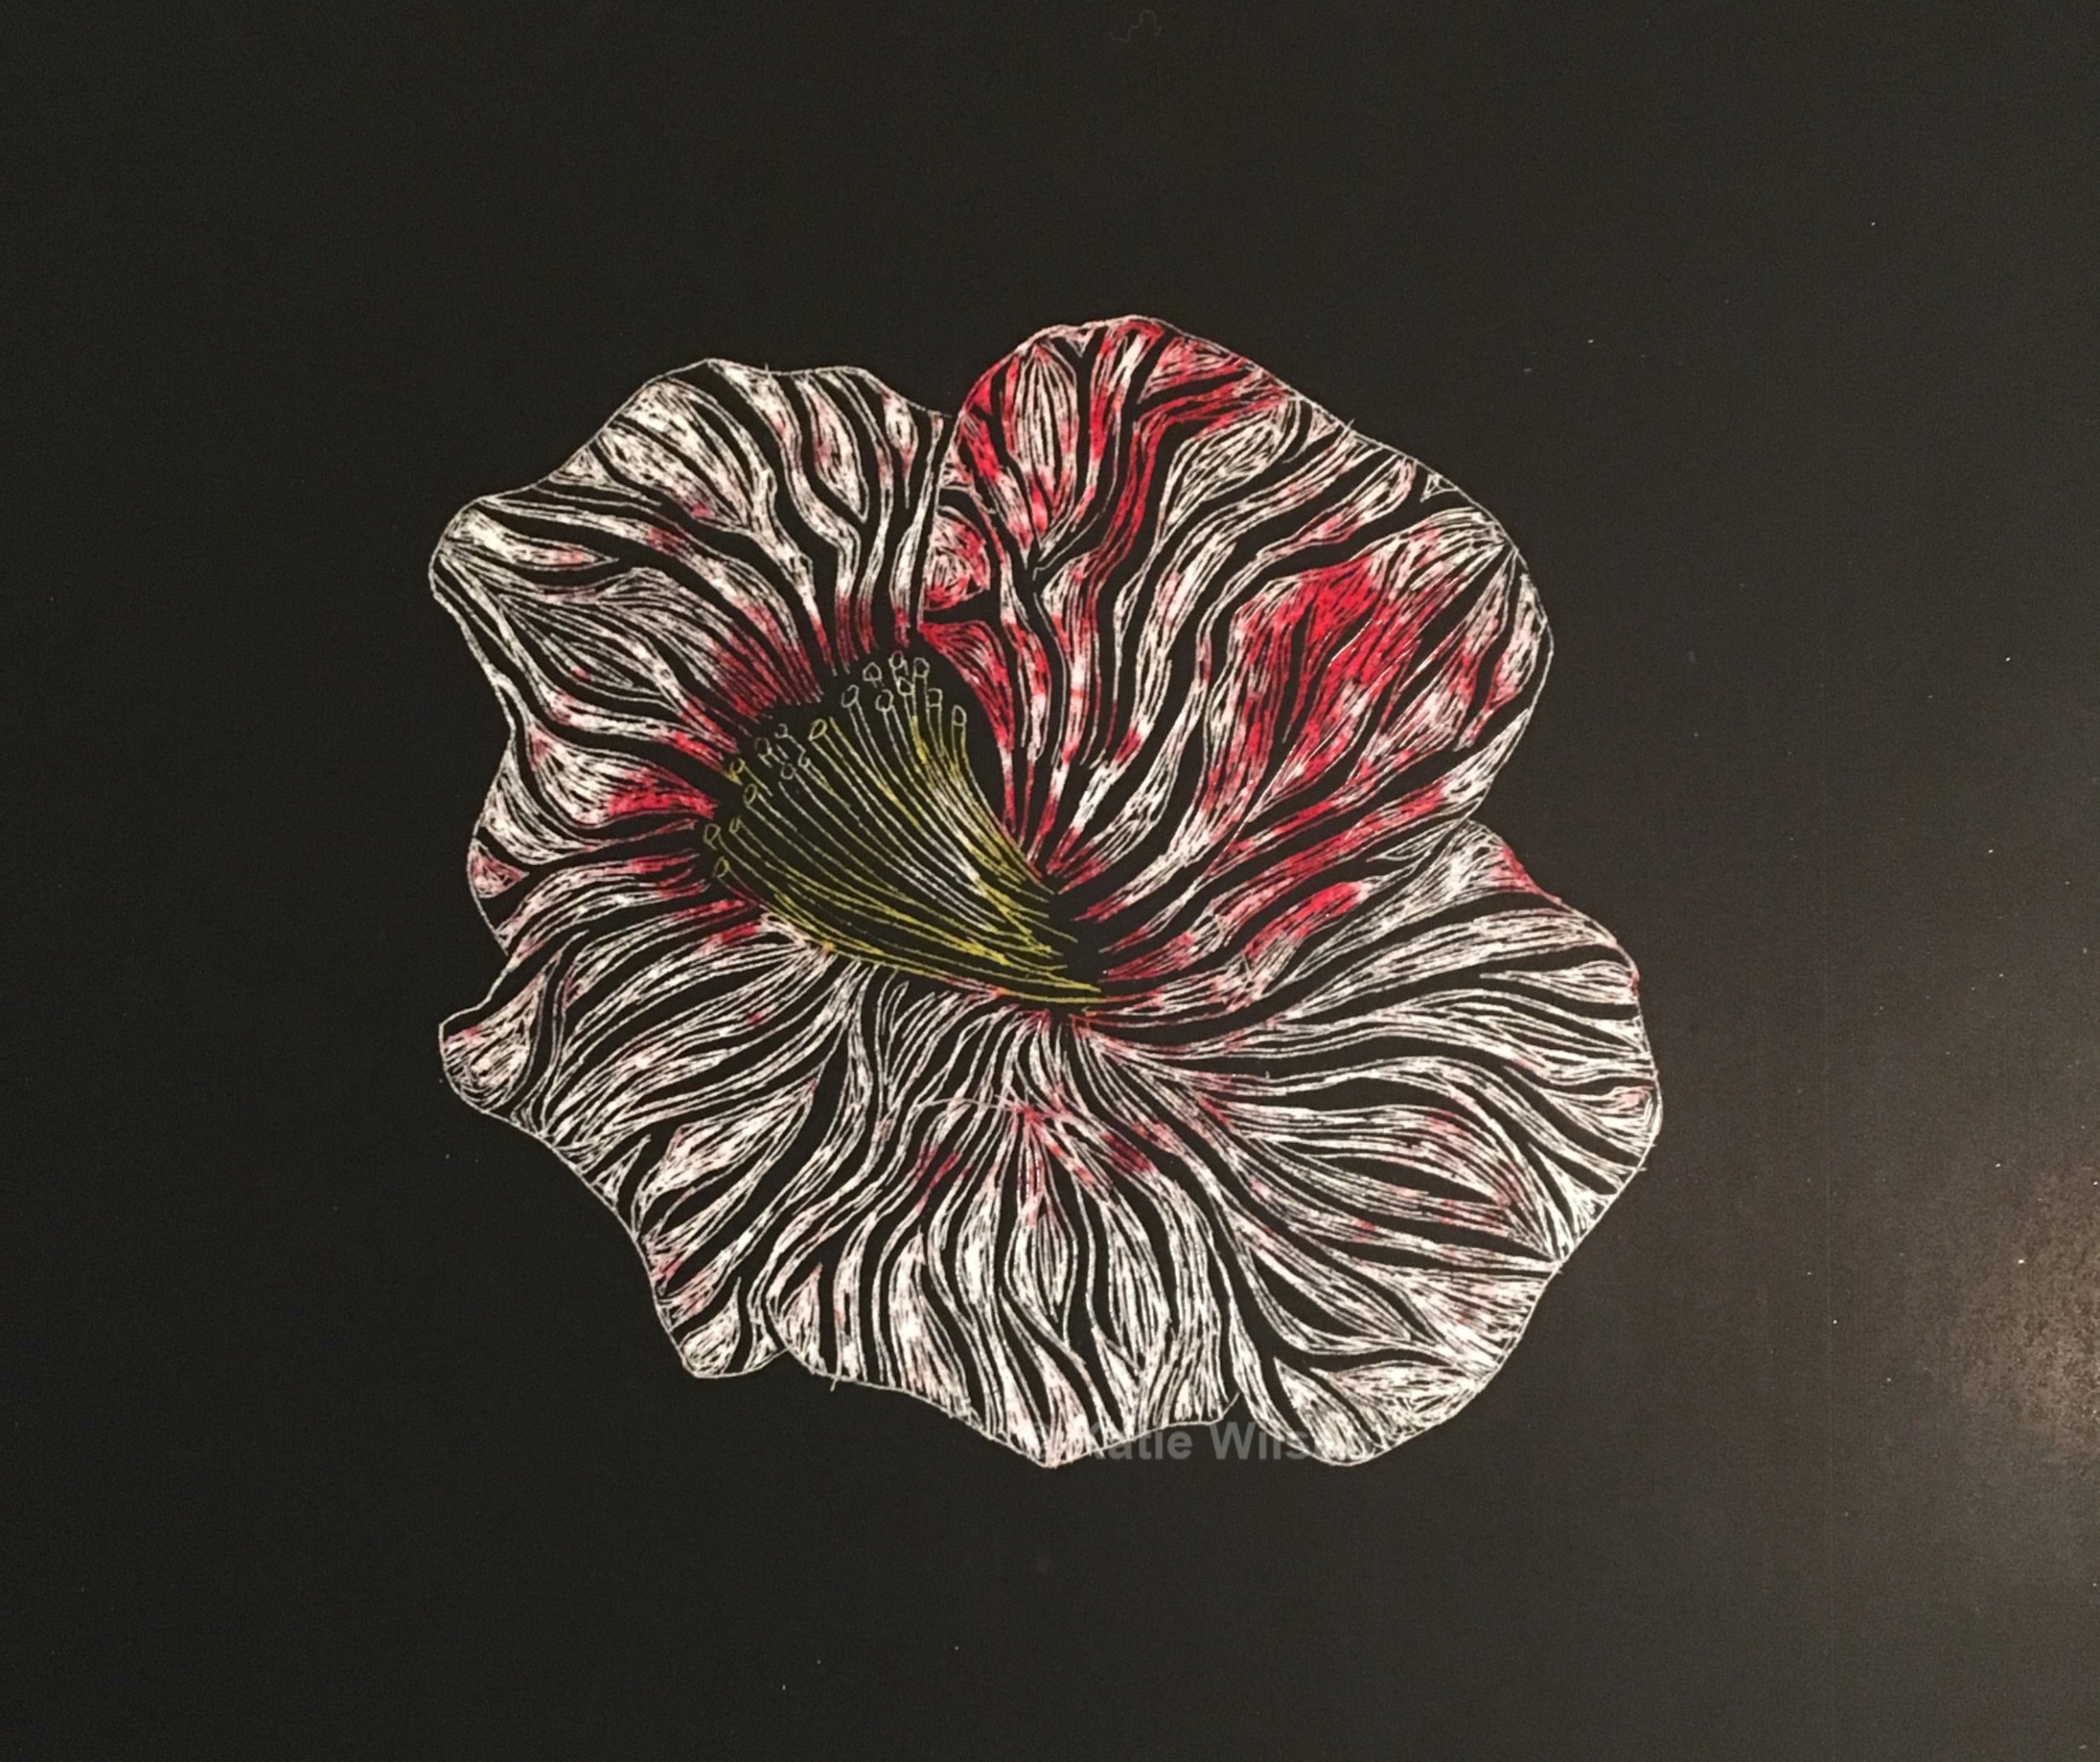 """Pressed, 2018 5.5"""" x 6""""   She pulled out her book and thumbed to Chapter 3 - Red. She eased the wilted flower into position and smiled."""